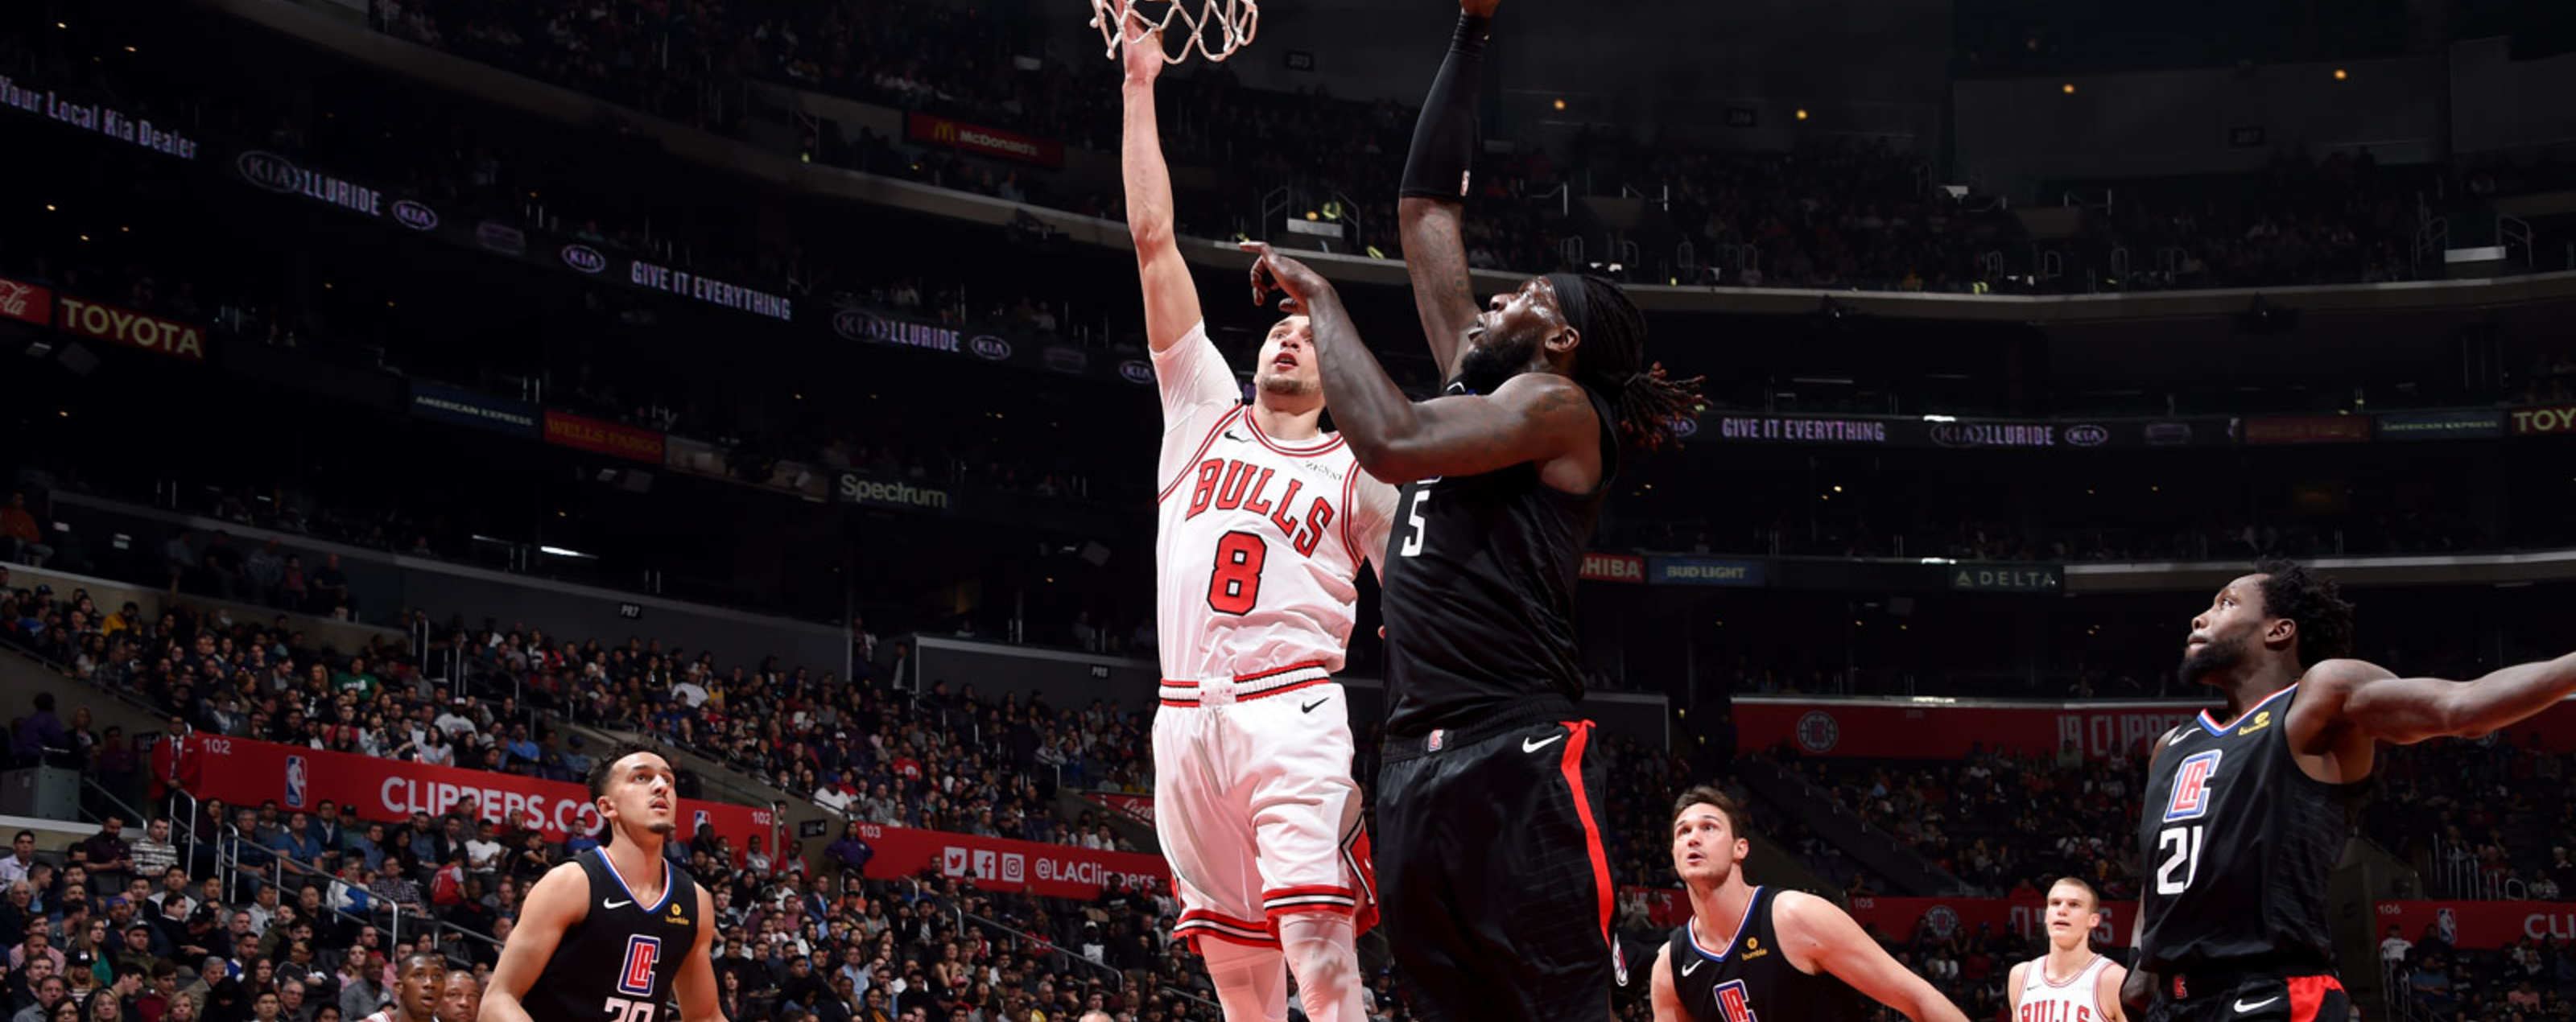 Zach LaVine #8 of the Chicago Bulls shoots the ball against the Los Angeles Clippers